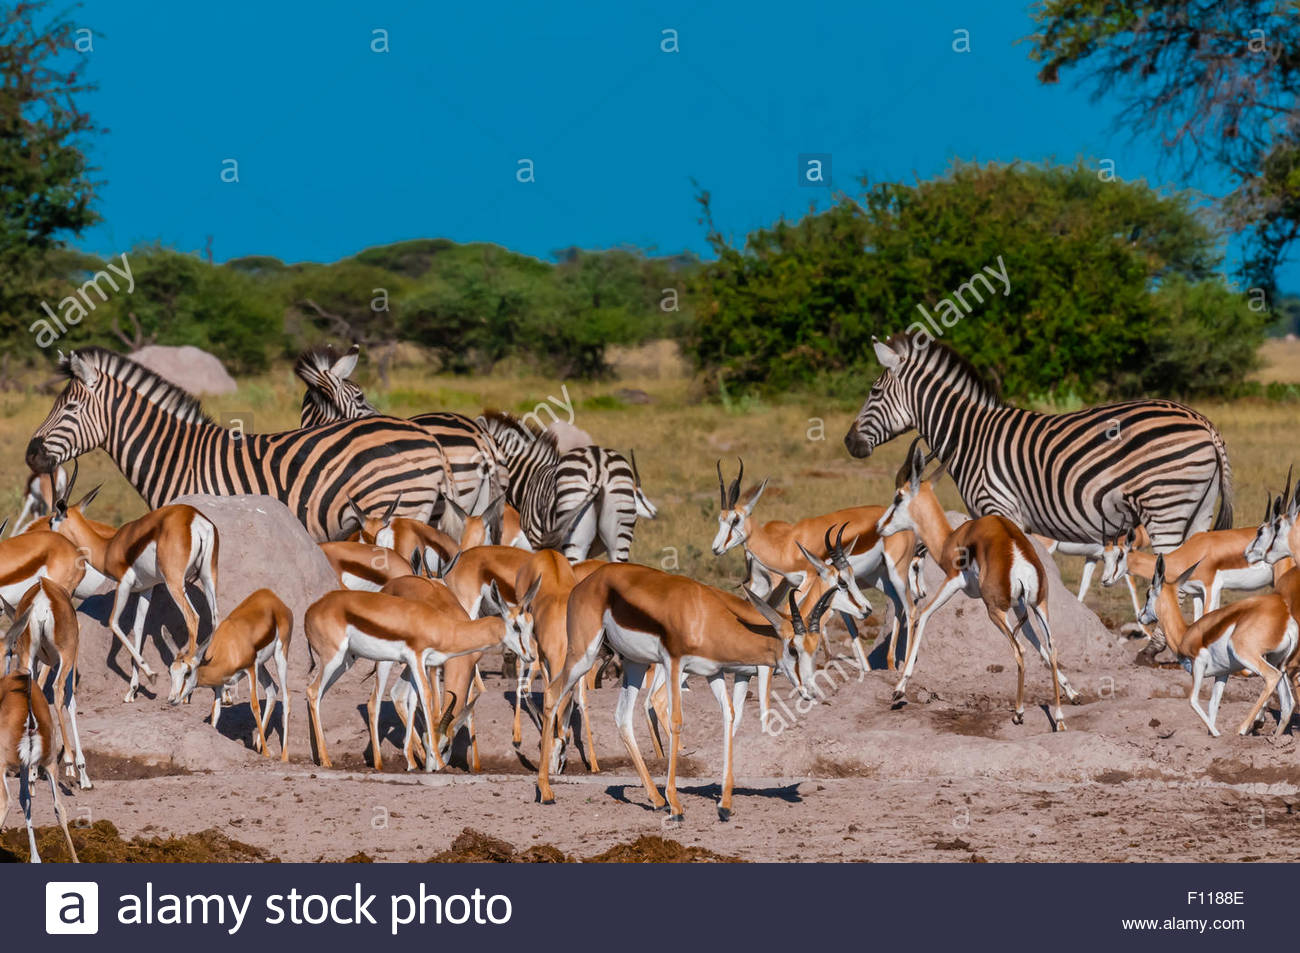 Springbok and zebras at a watering hole, Nxai Pan National Park, Botswana. Stock Photo